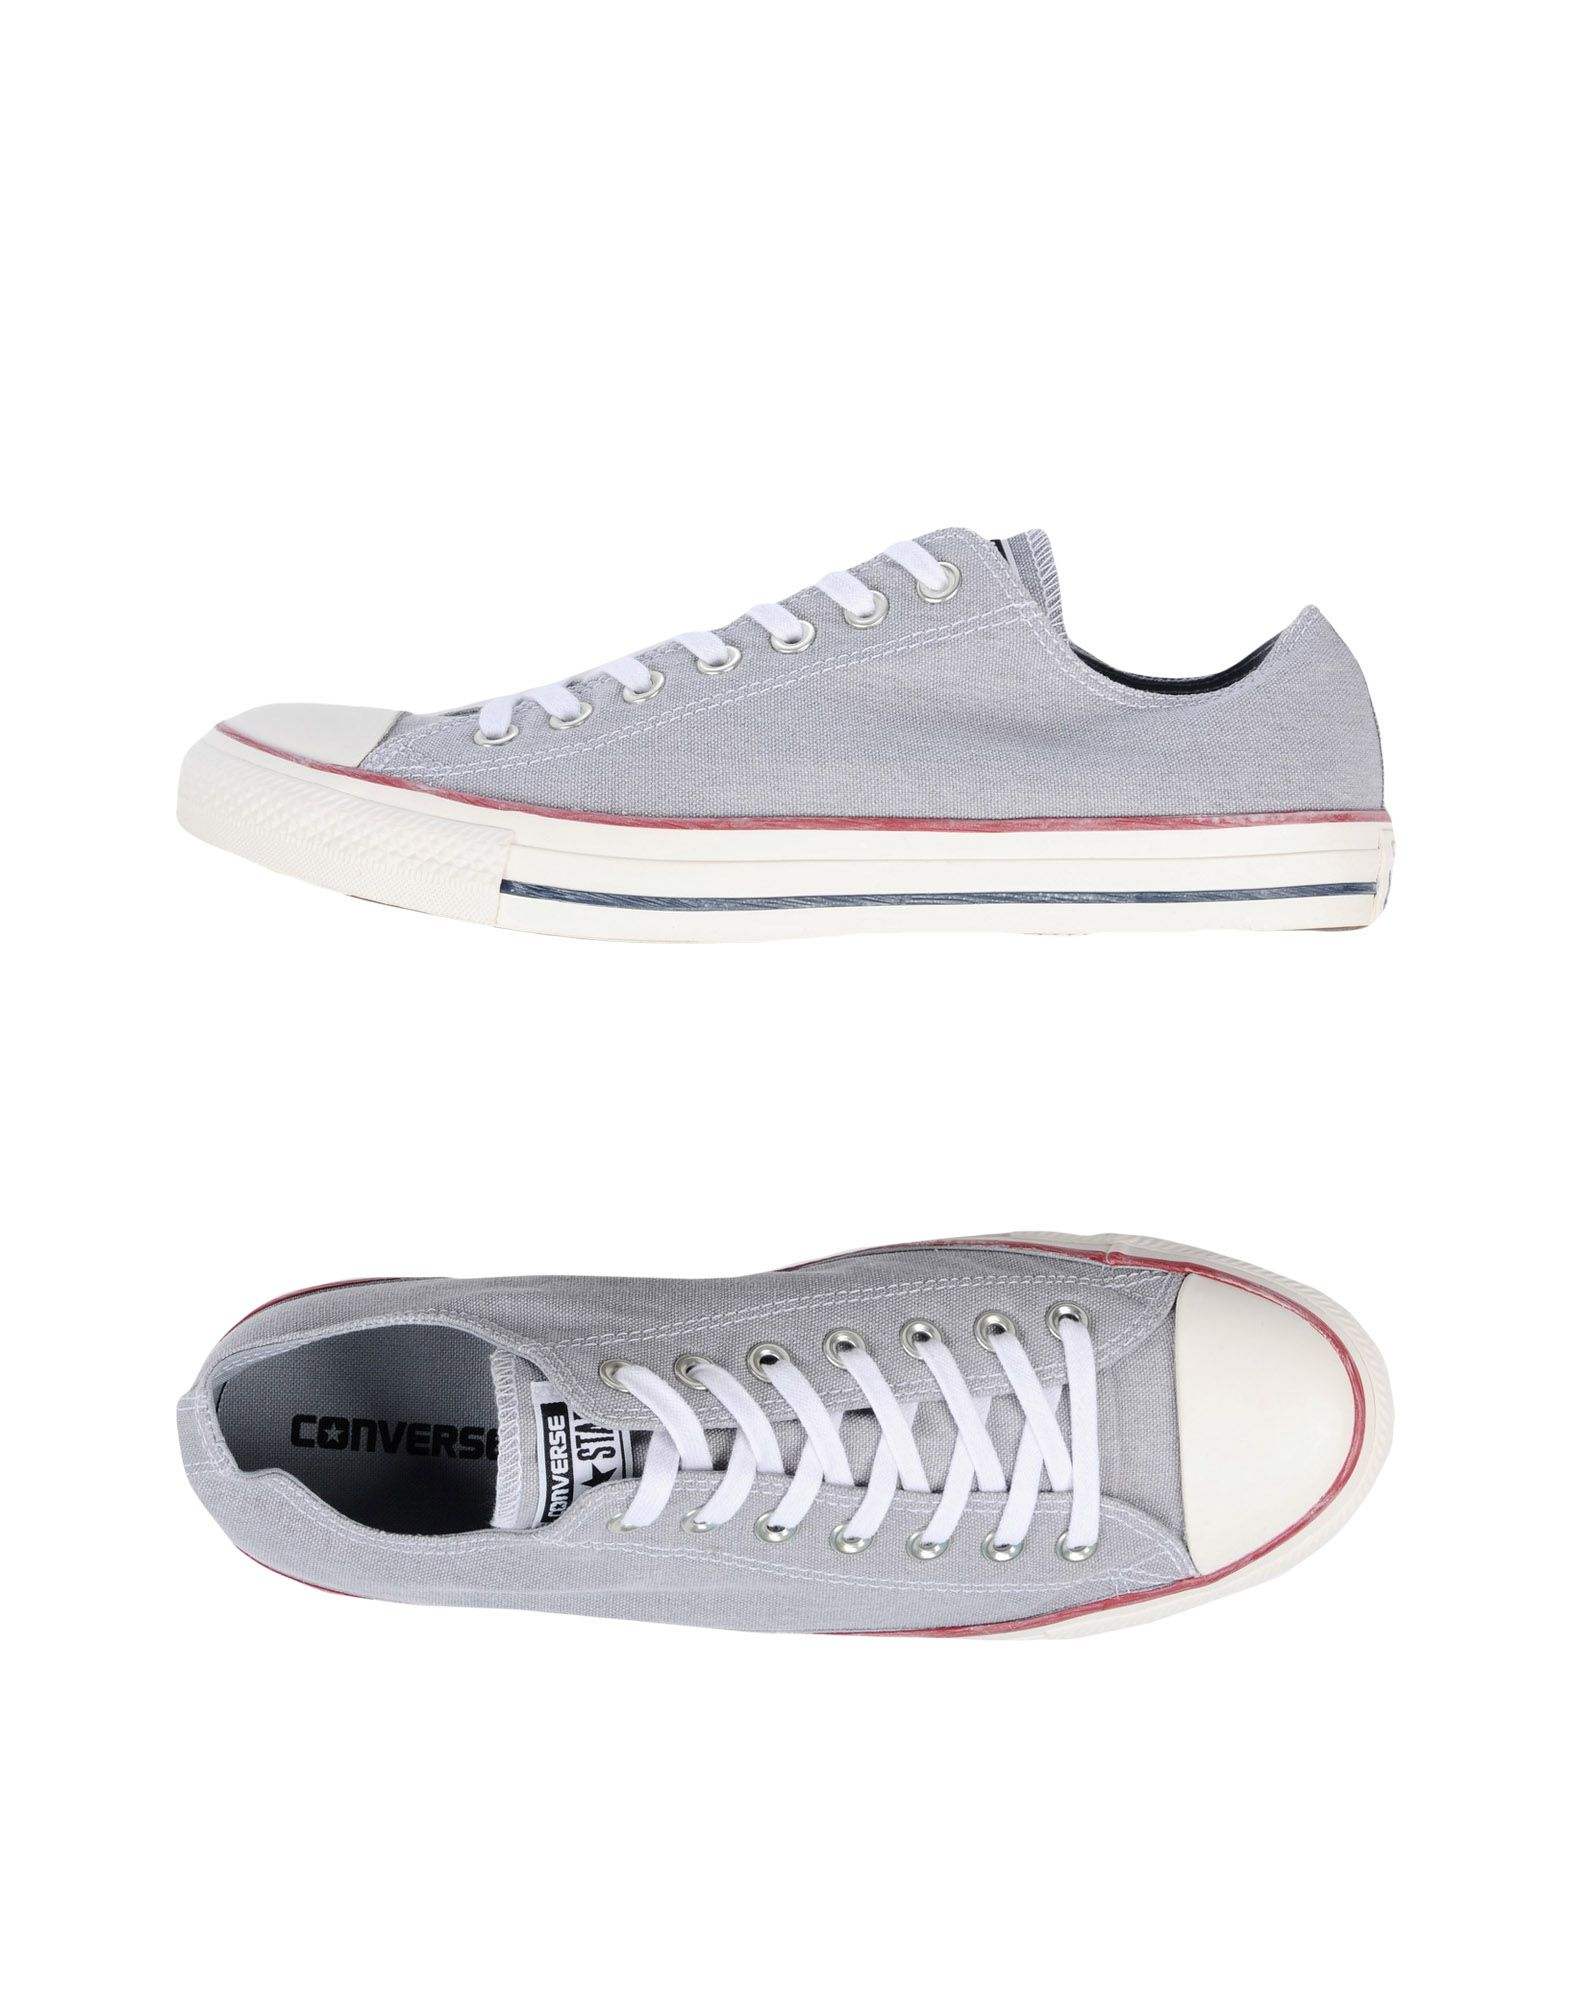 Sneakers Converse All Star Ctas Ox Stone Wash - Uomo - 11437529ME